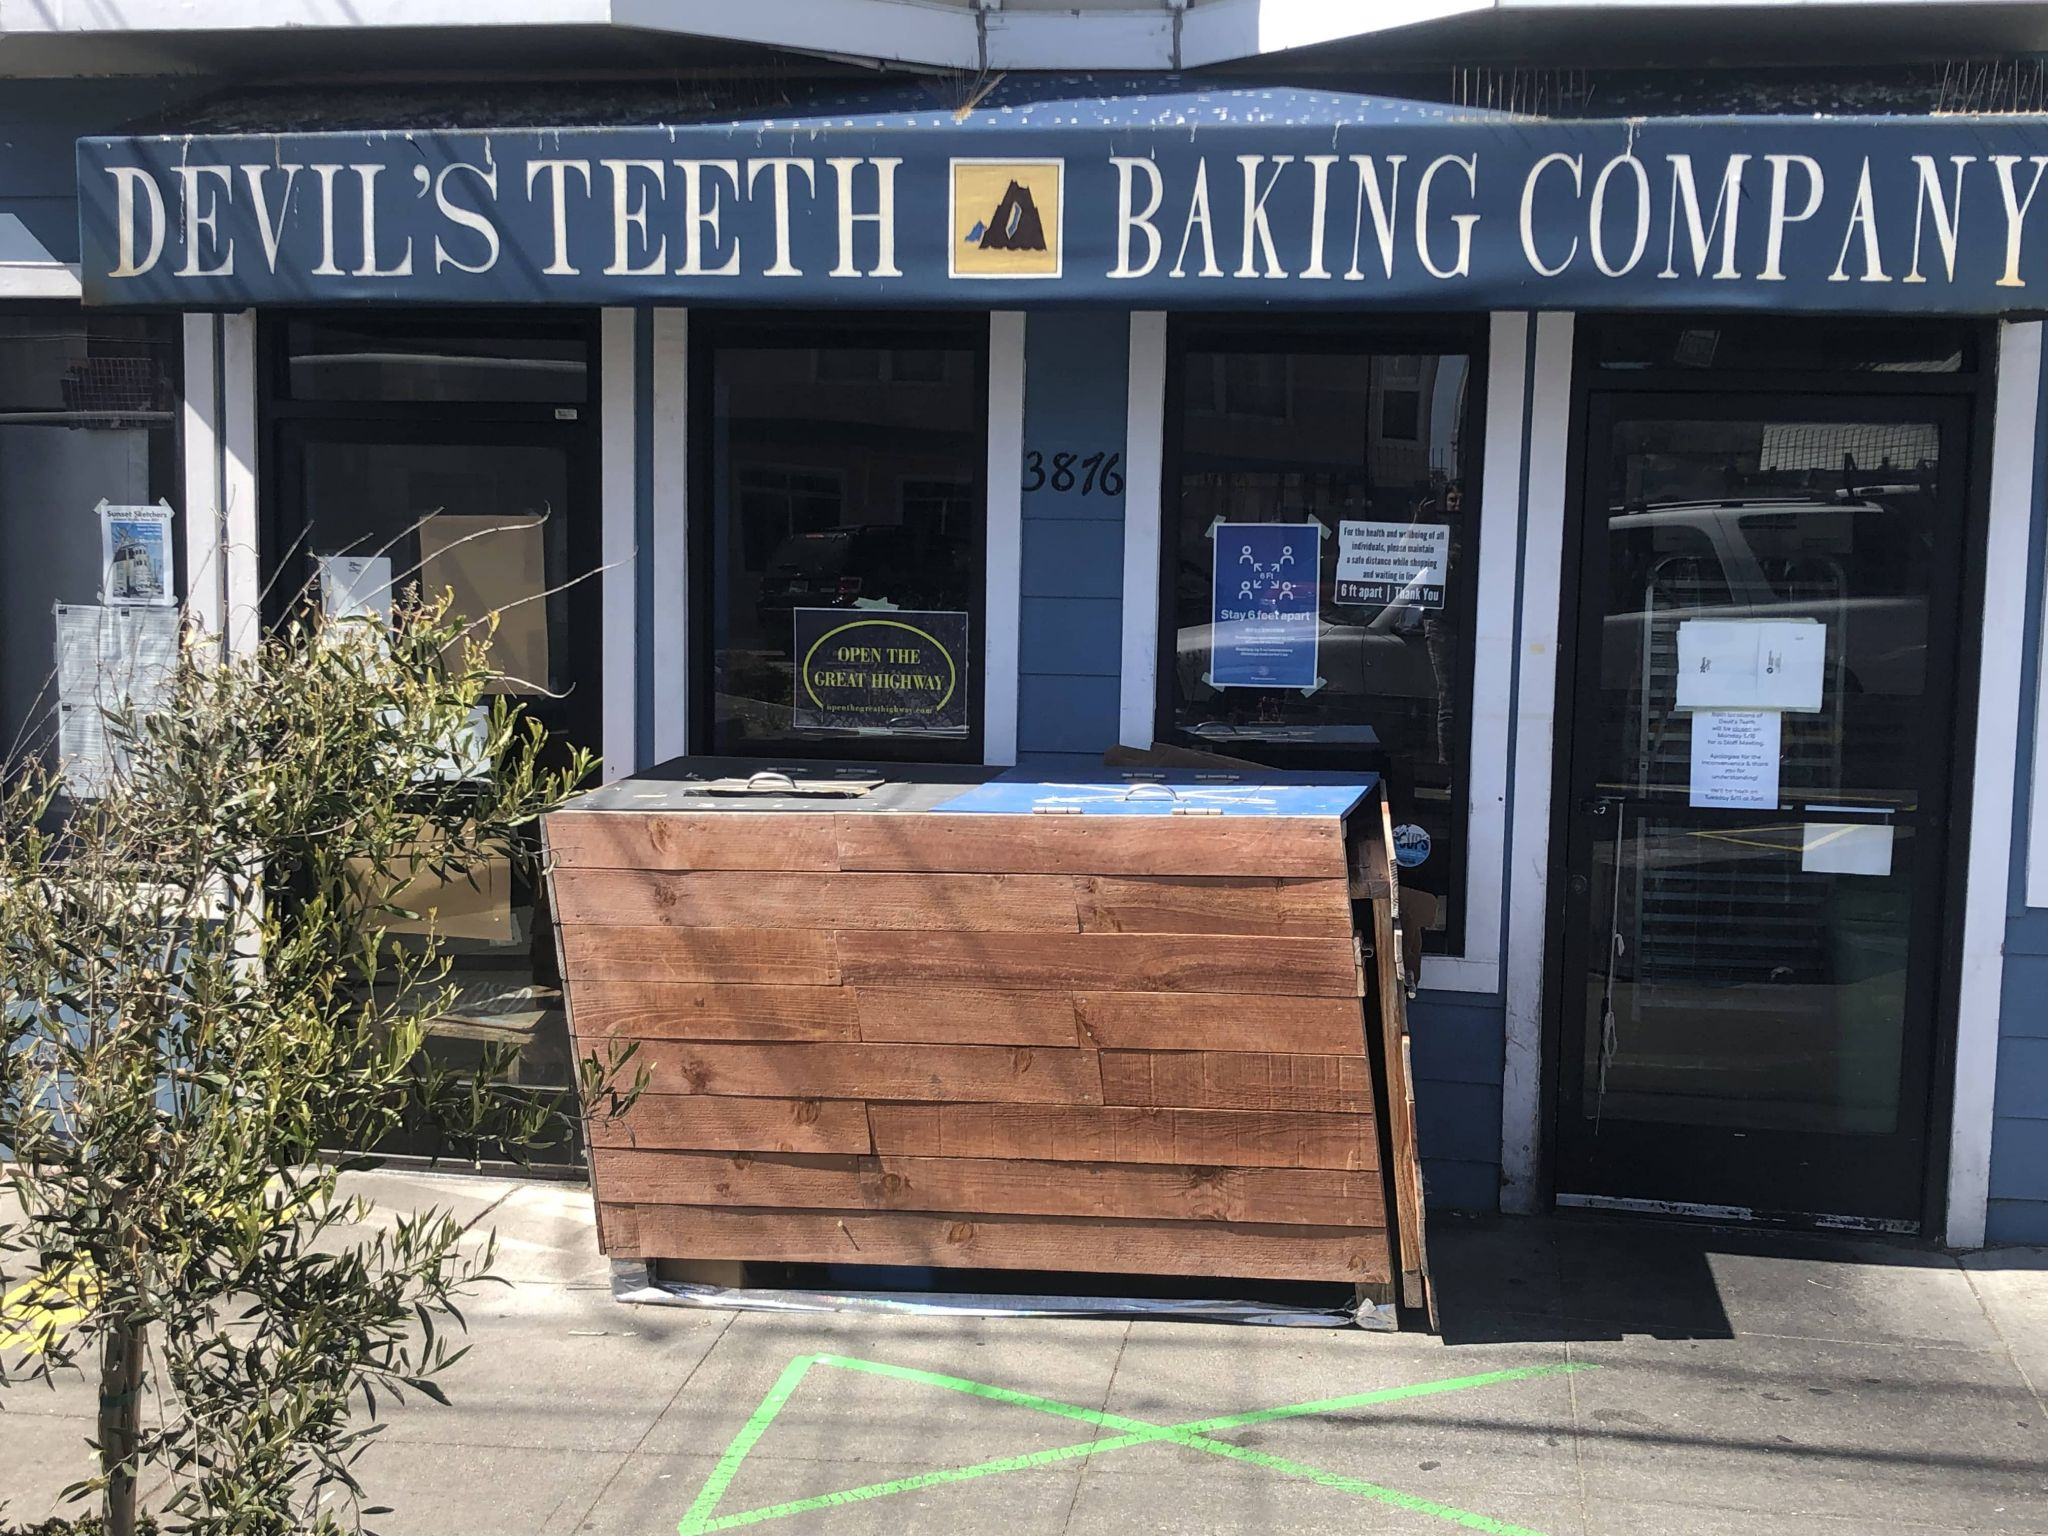 Popular SF bakery sparks outrage for stance on the Great Highway